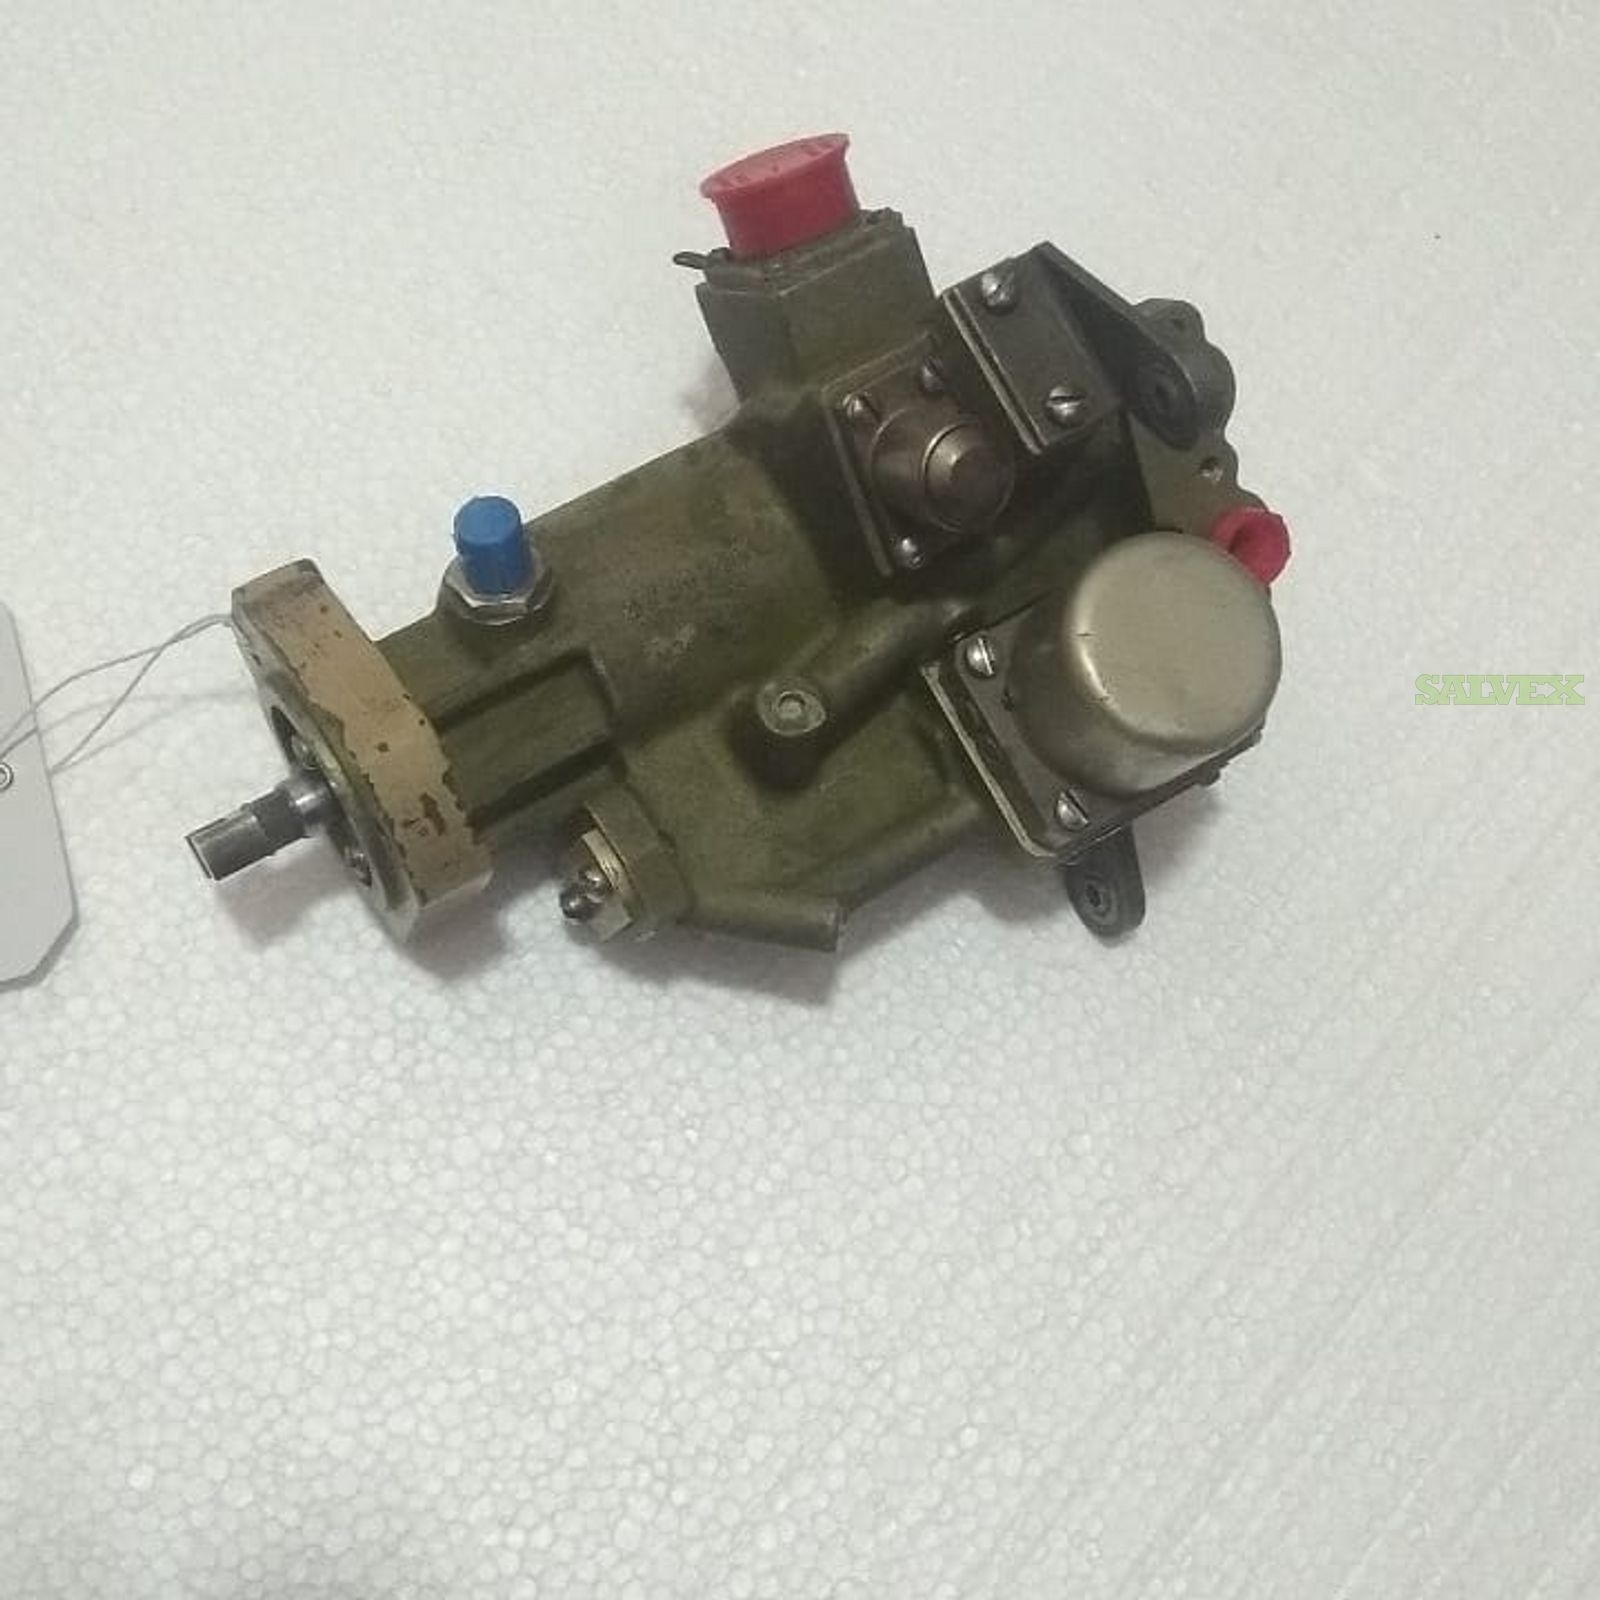 Honeywell Actuator PN: 3600232-2M in As Removed - As Is, No doc. (1 item )